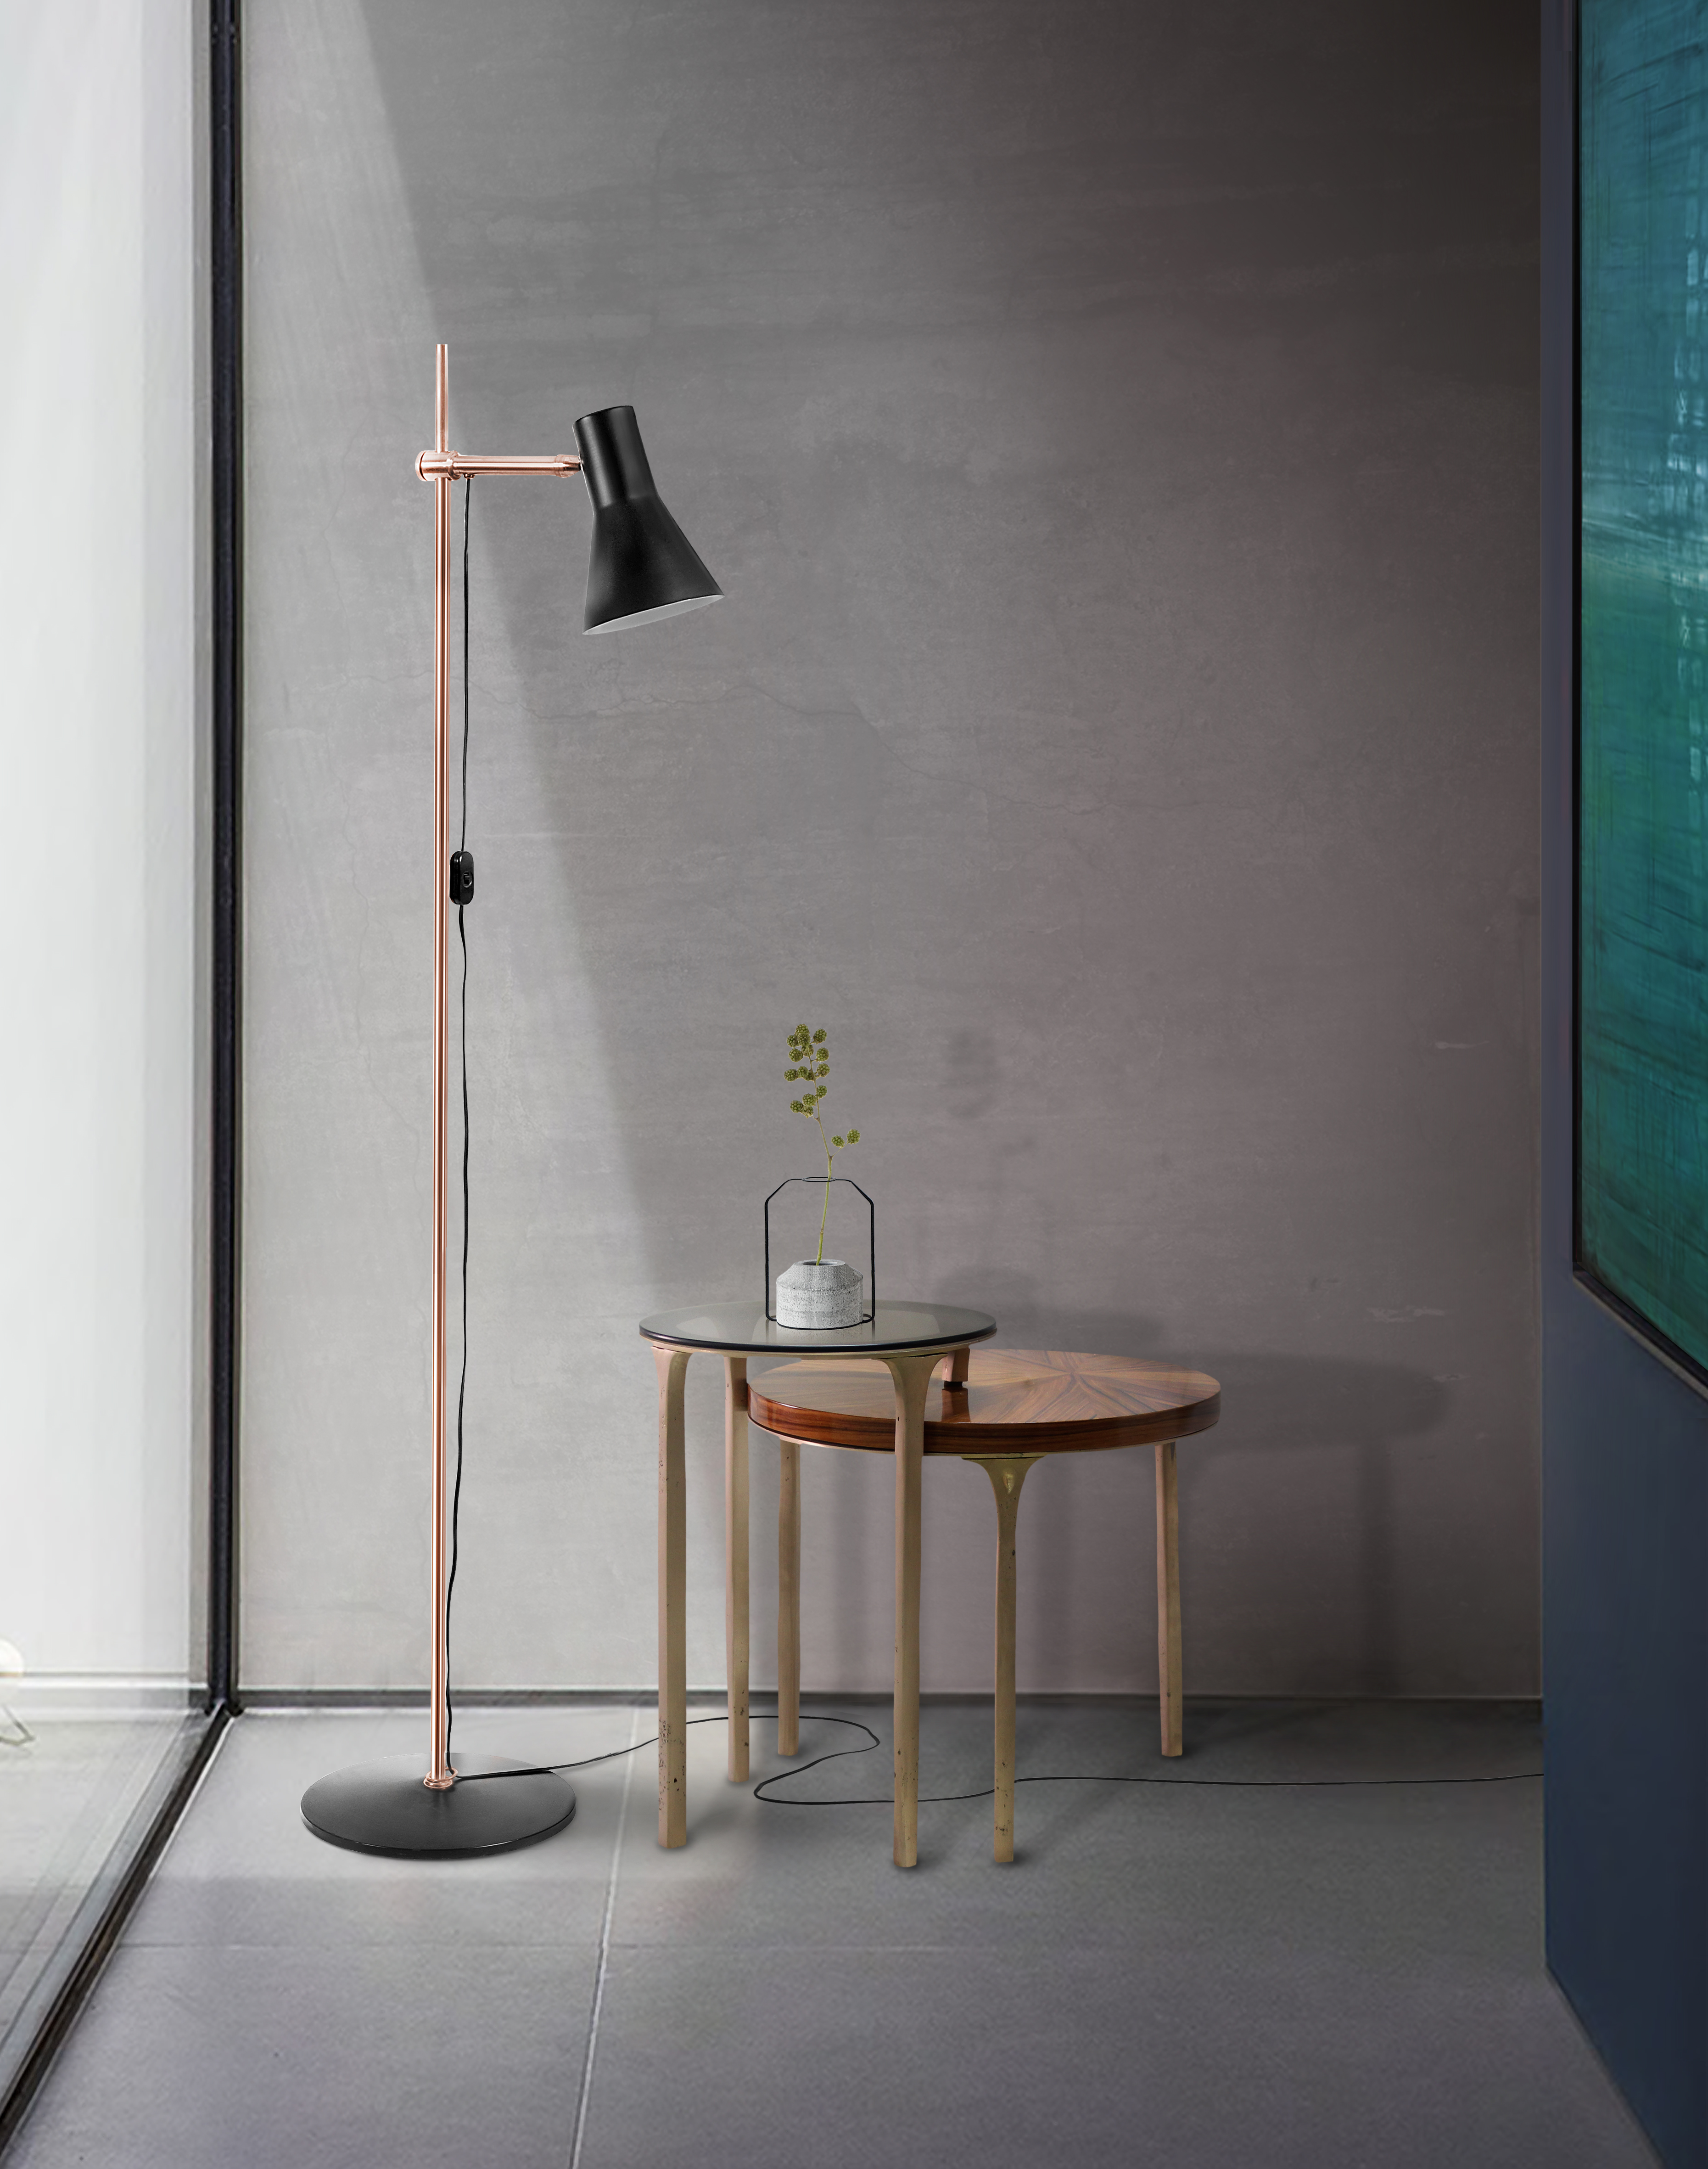 coleman floor lamp Celebrate Coleman Hawkin's Birthday With Coleman Floor Lamp Celebrate Coleman Hawkins Birthday With Coleman Floor Lamp 3